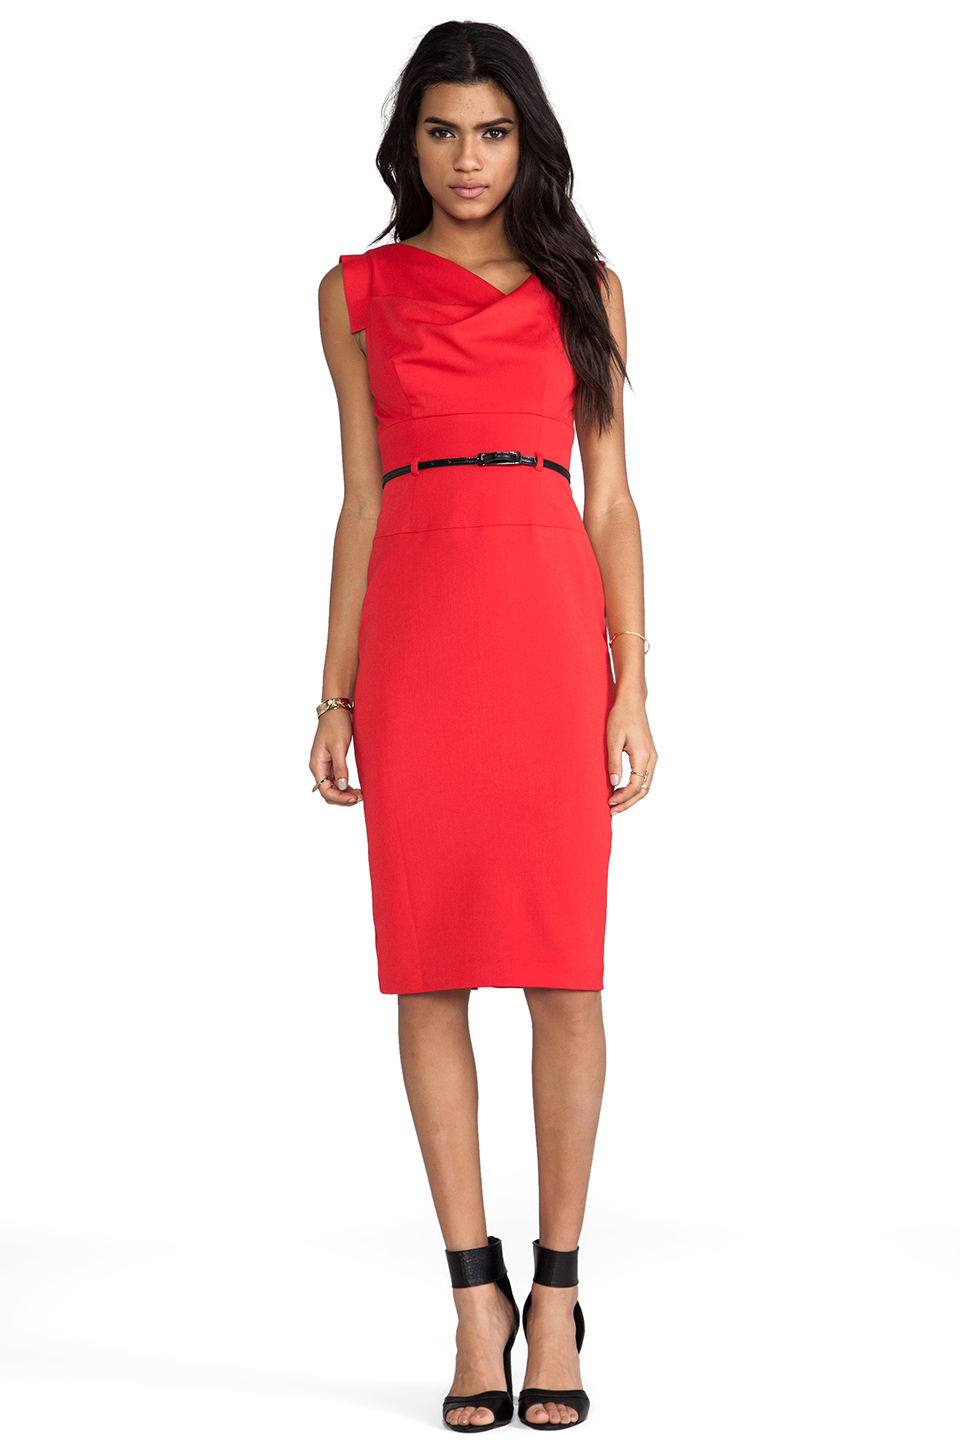 Black Halo Jackie O Dress In Red In Red Lyst